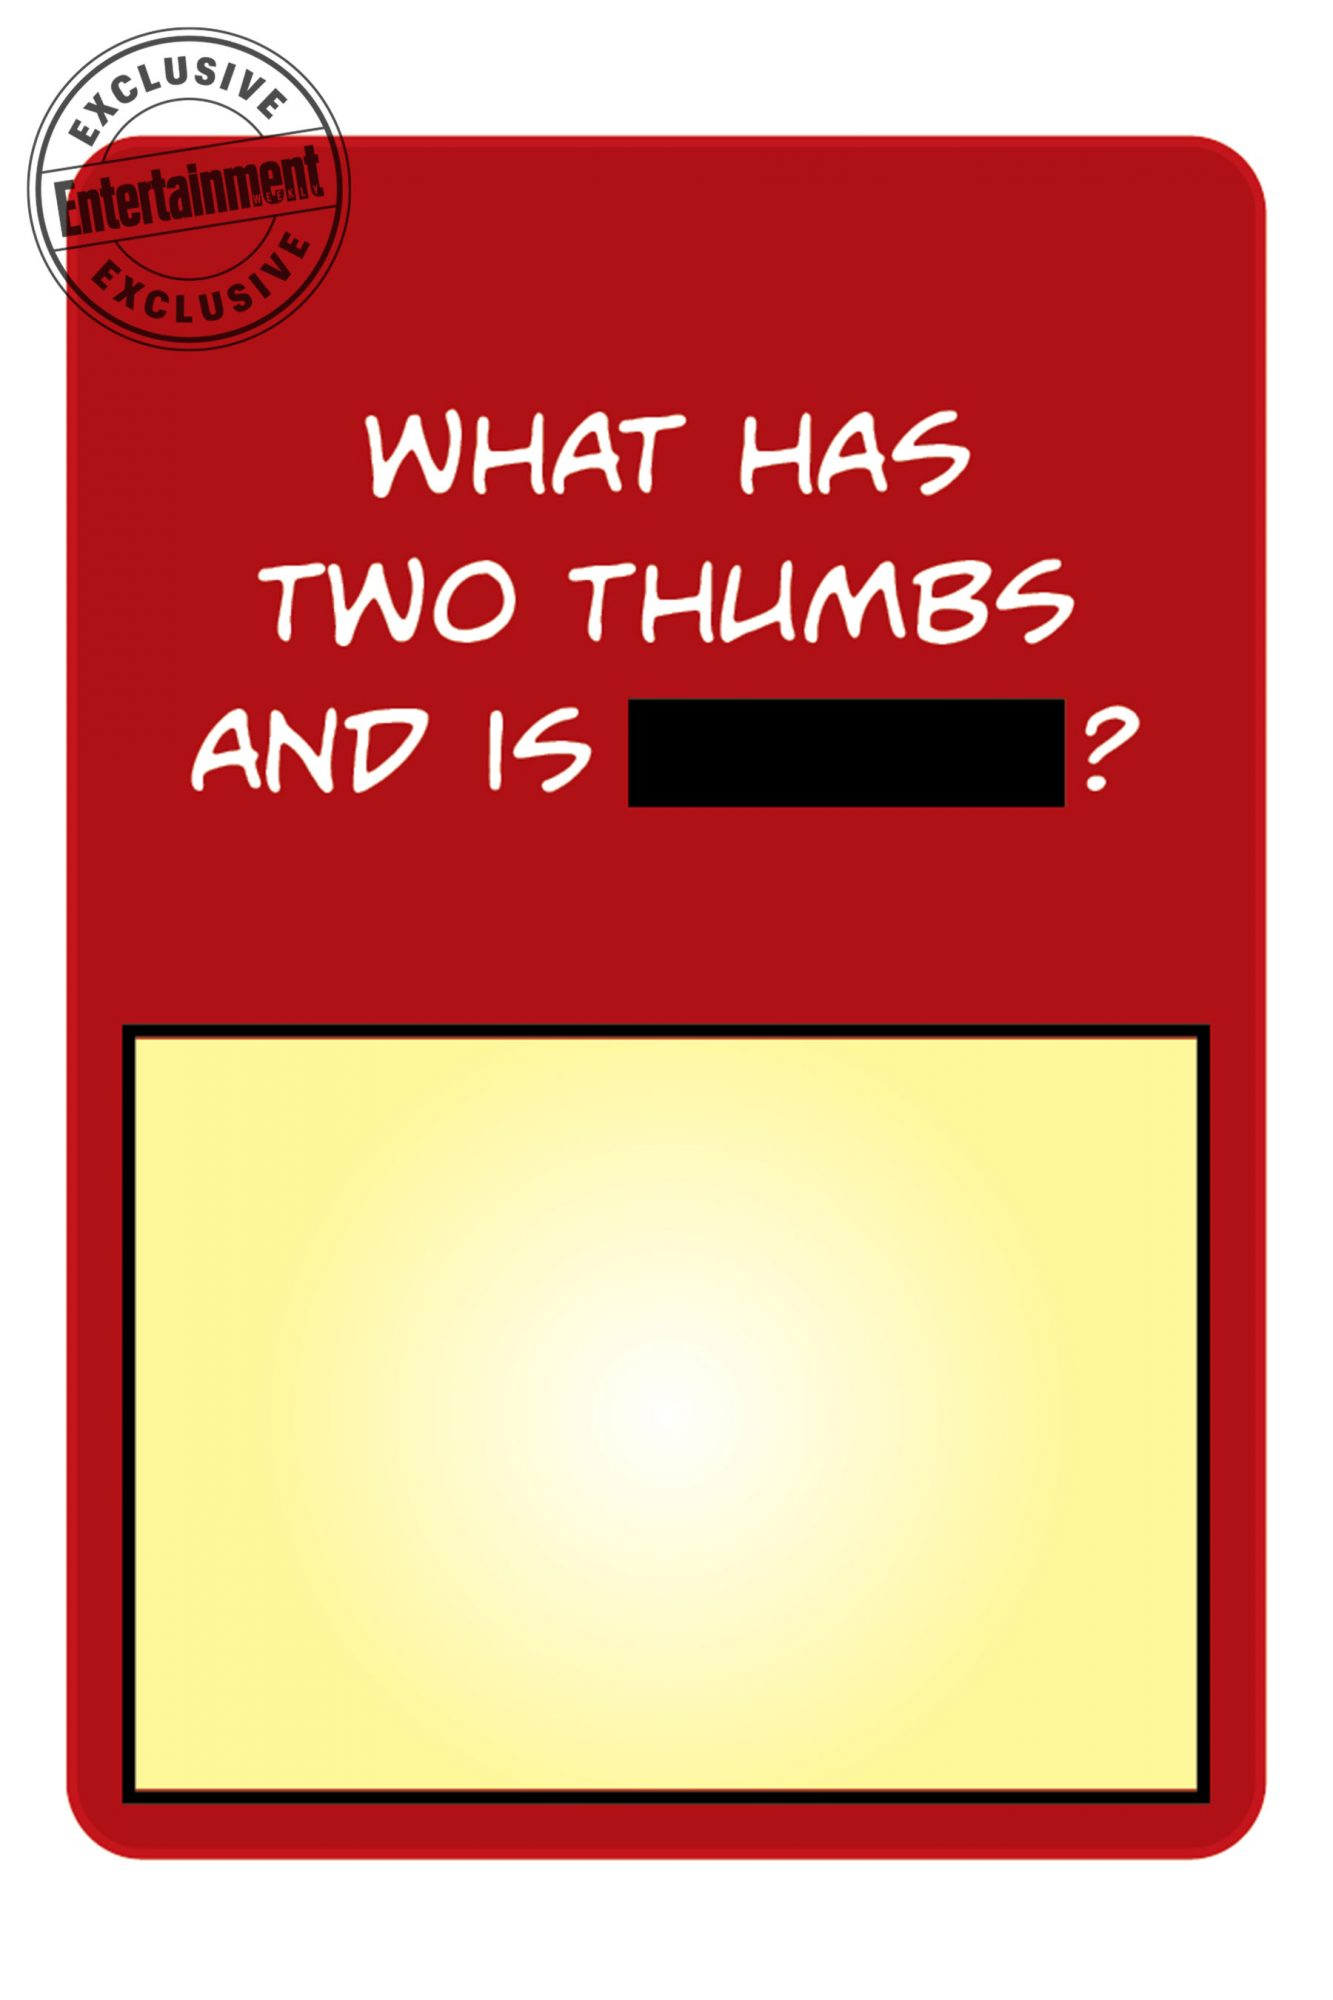 What has two thumbs and is [blank]?